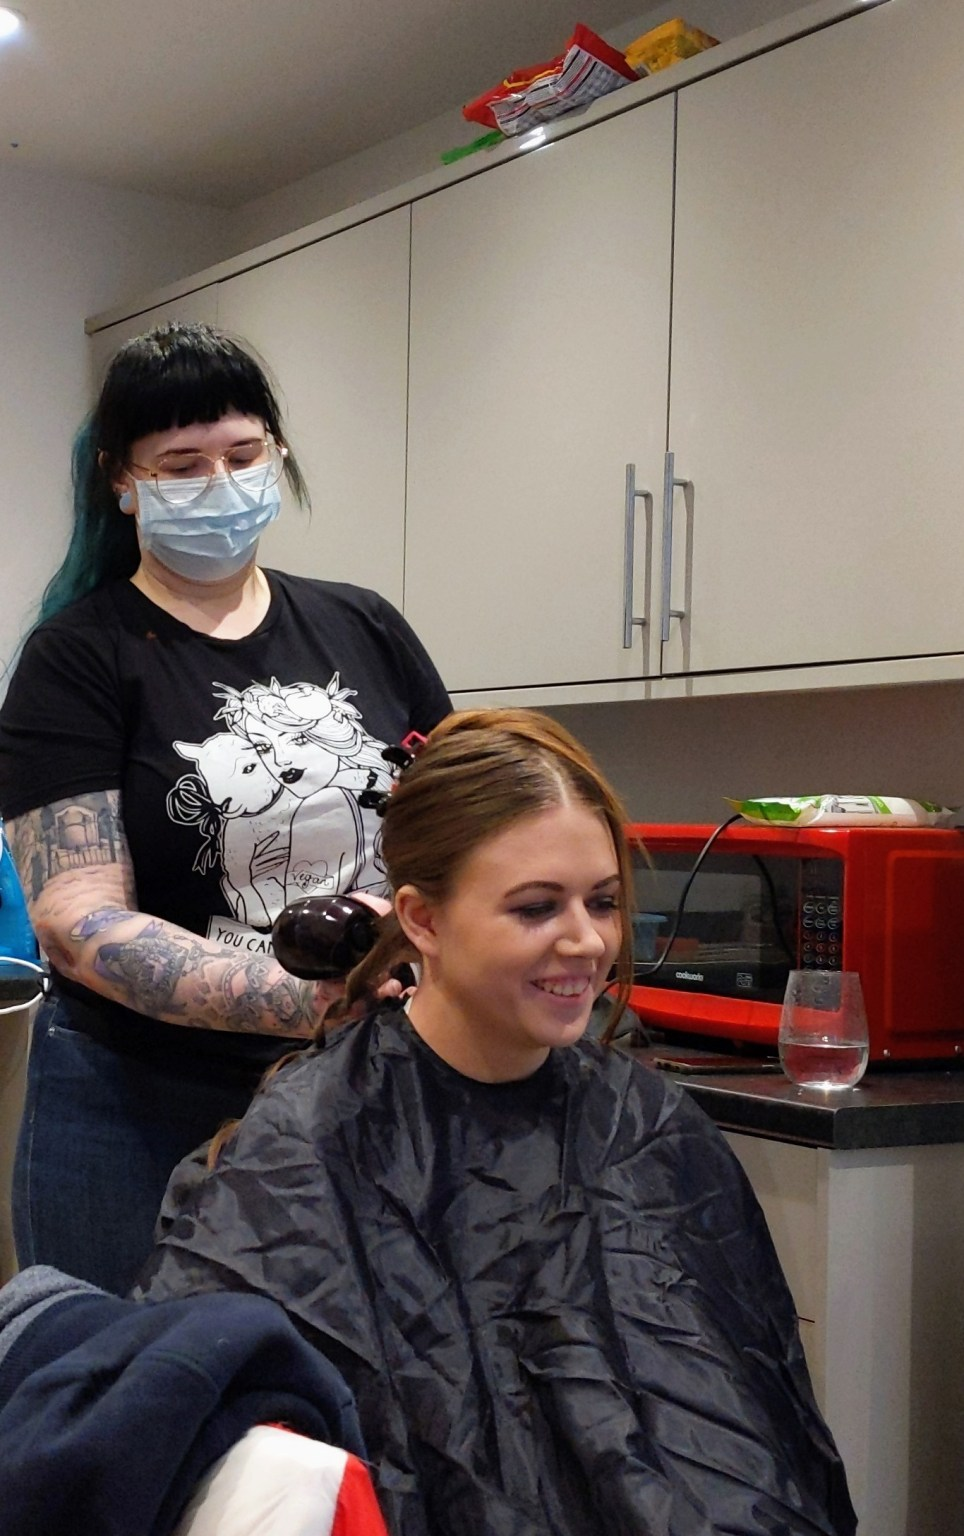 Hairdresser working on a bride to be, wearing a face mask. Getting ready for a COVID wedding